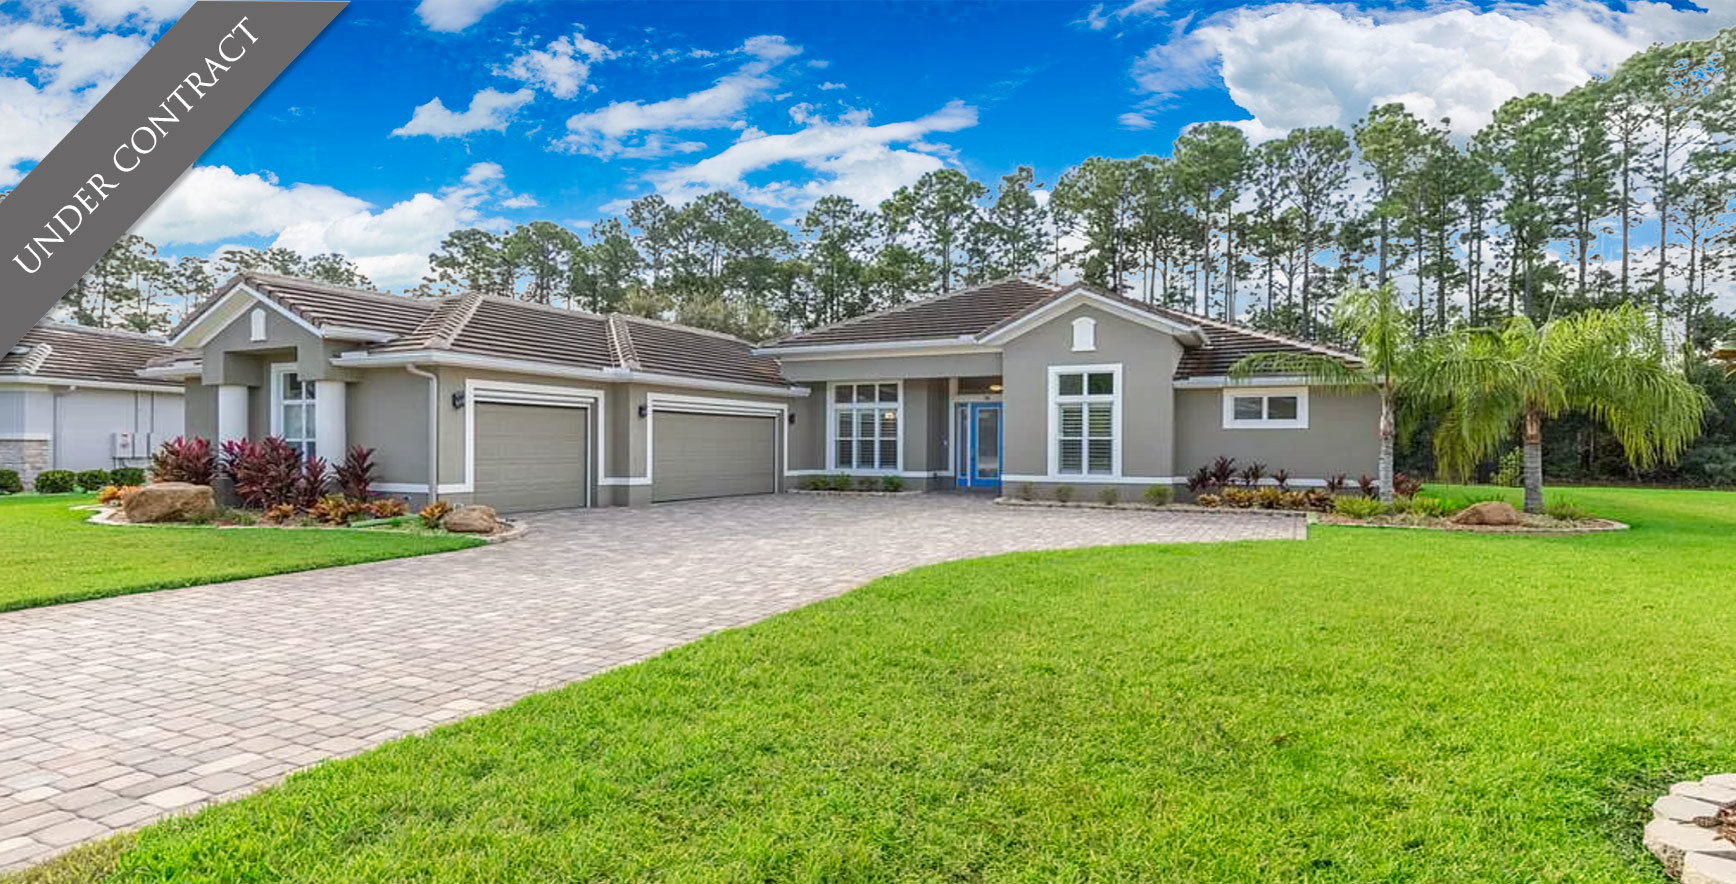 Homes for sale in Daytona Beach Florida Under Contract